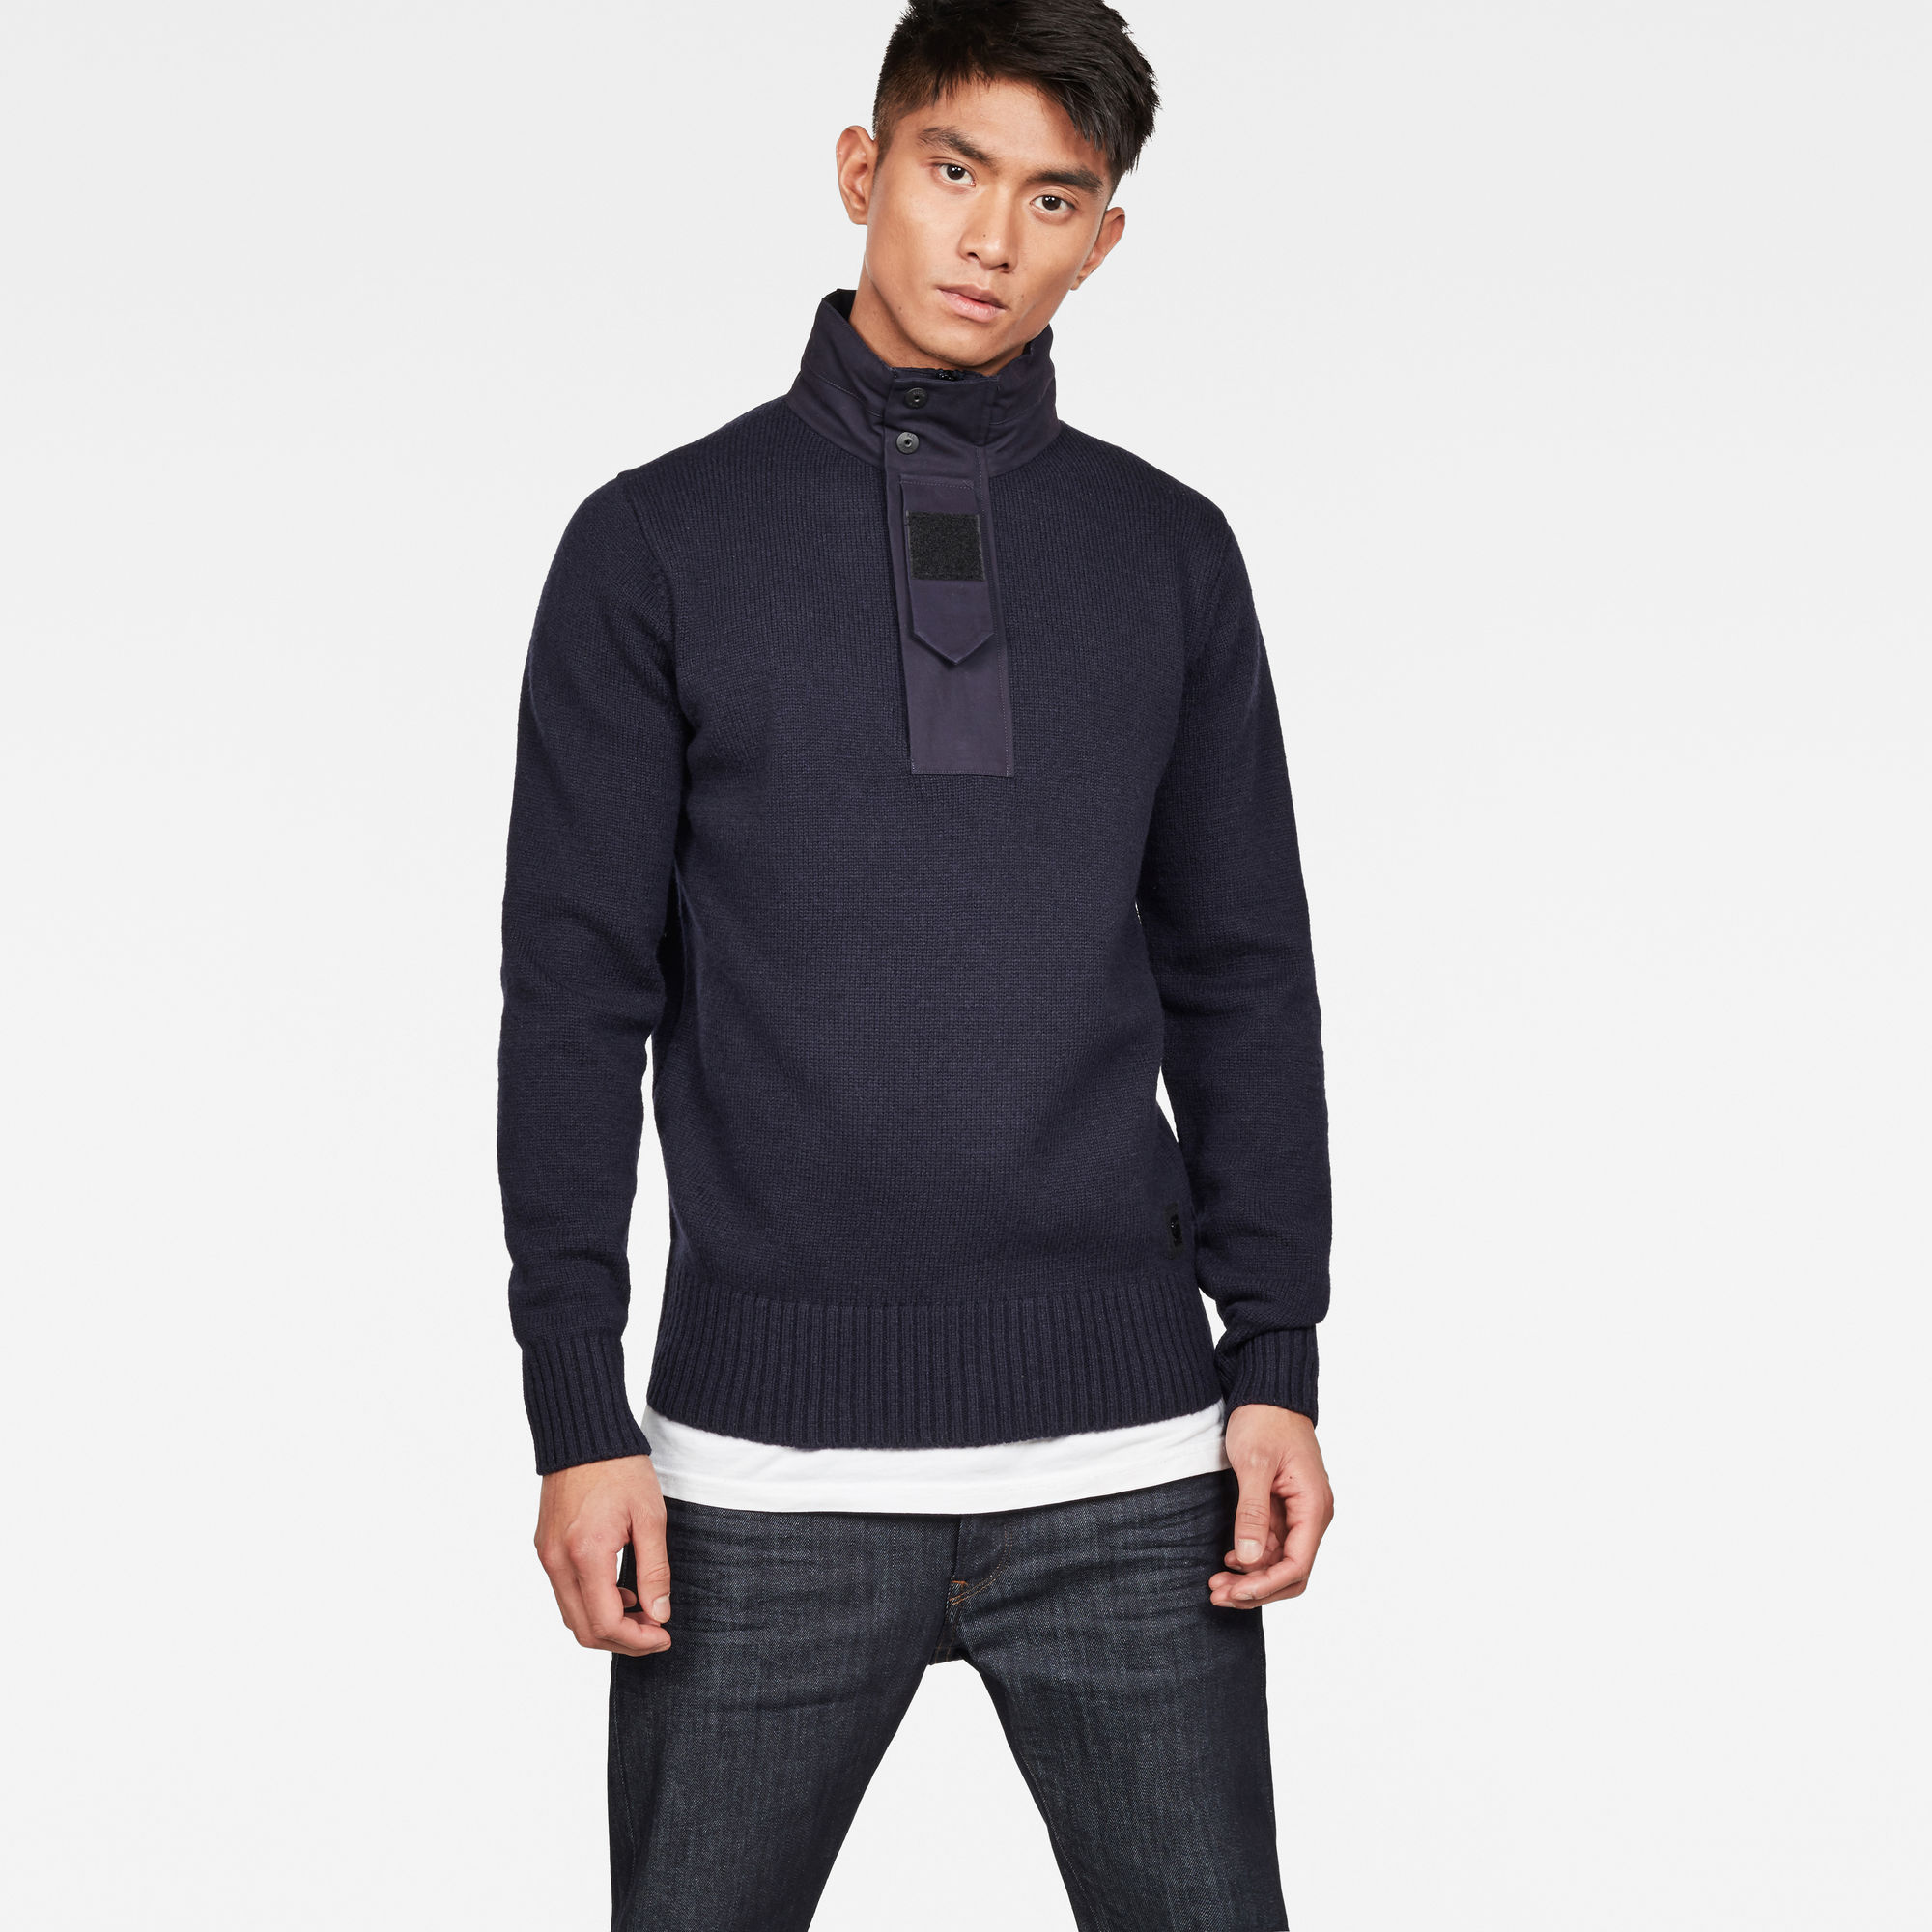 Image of G Star Raw Bantson Zip Knit